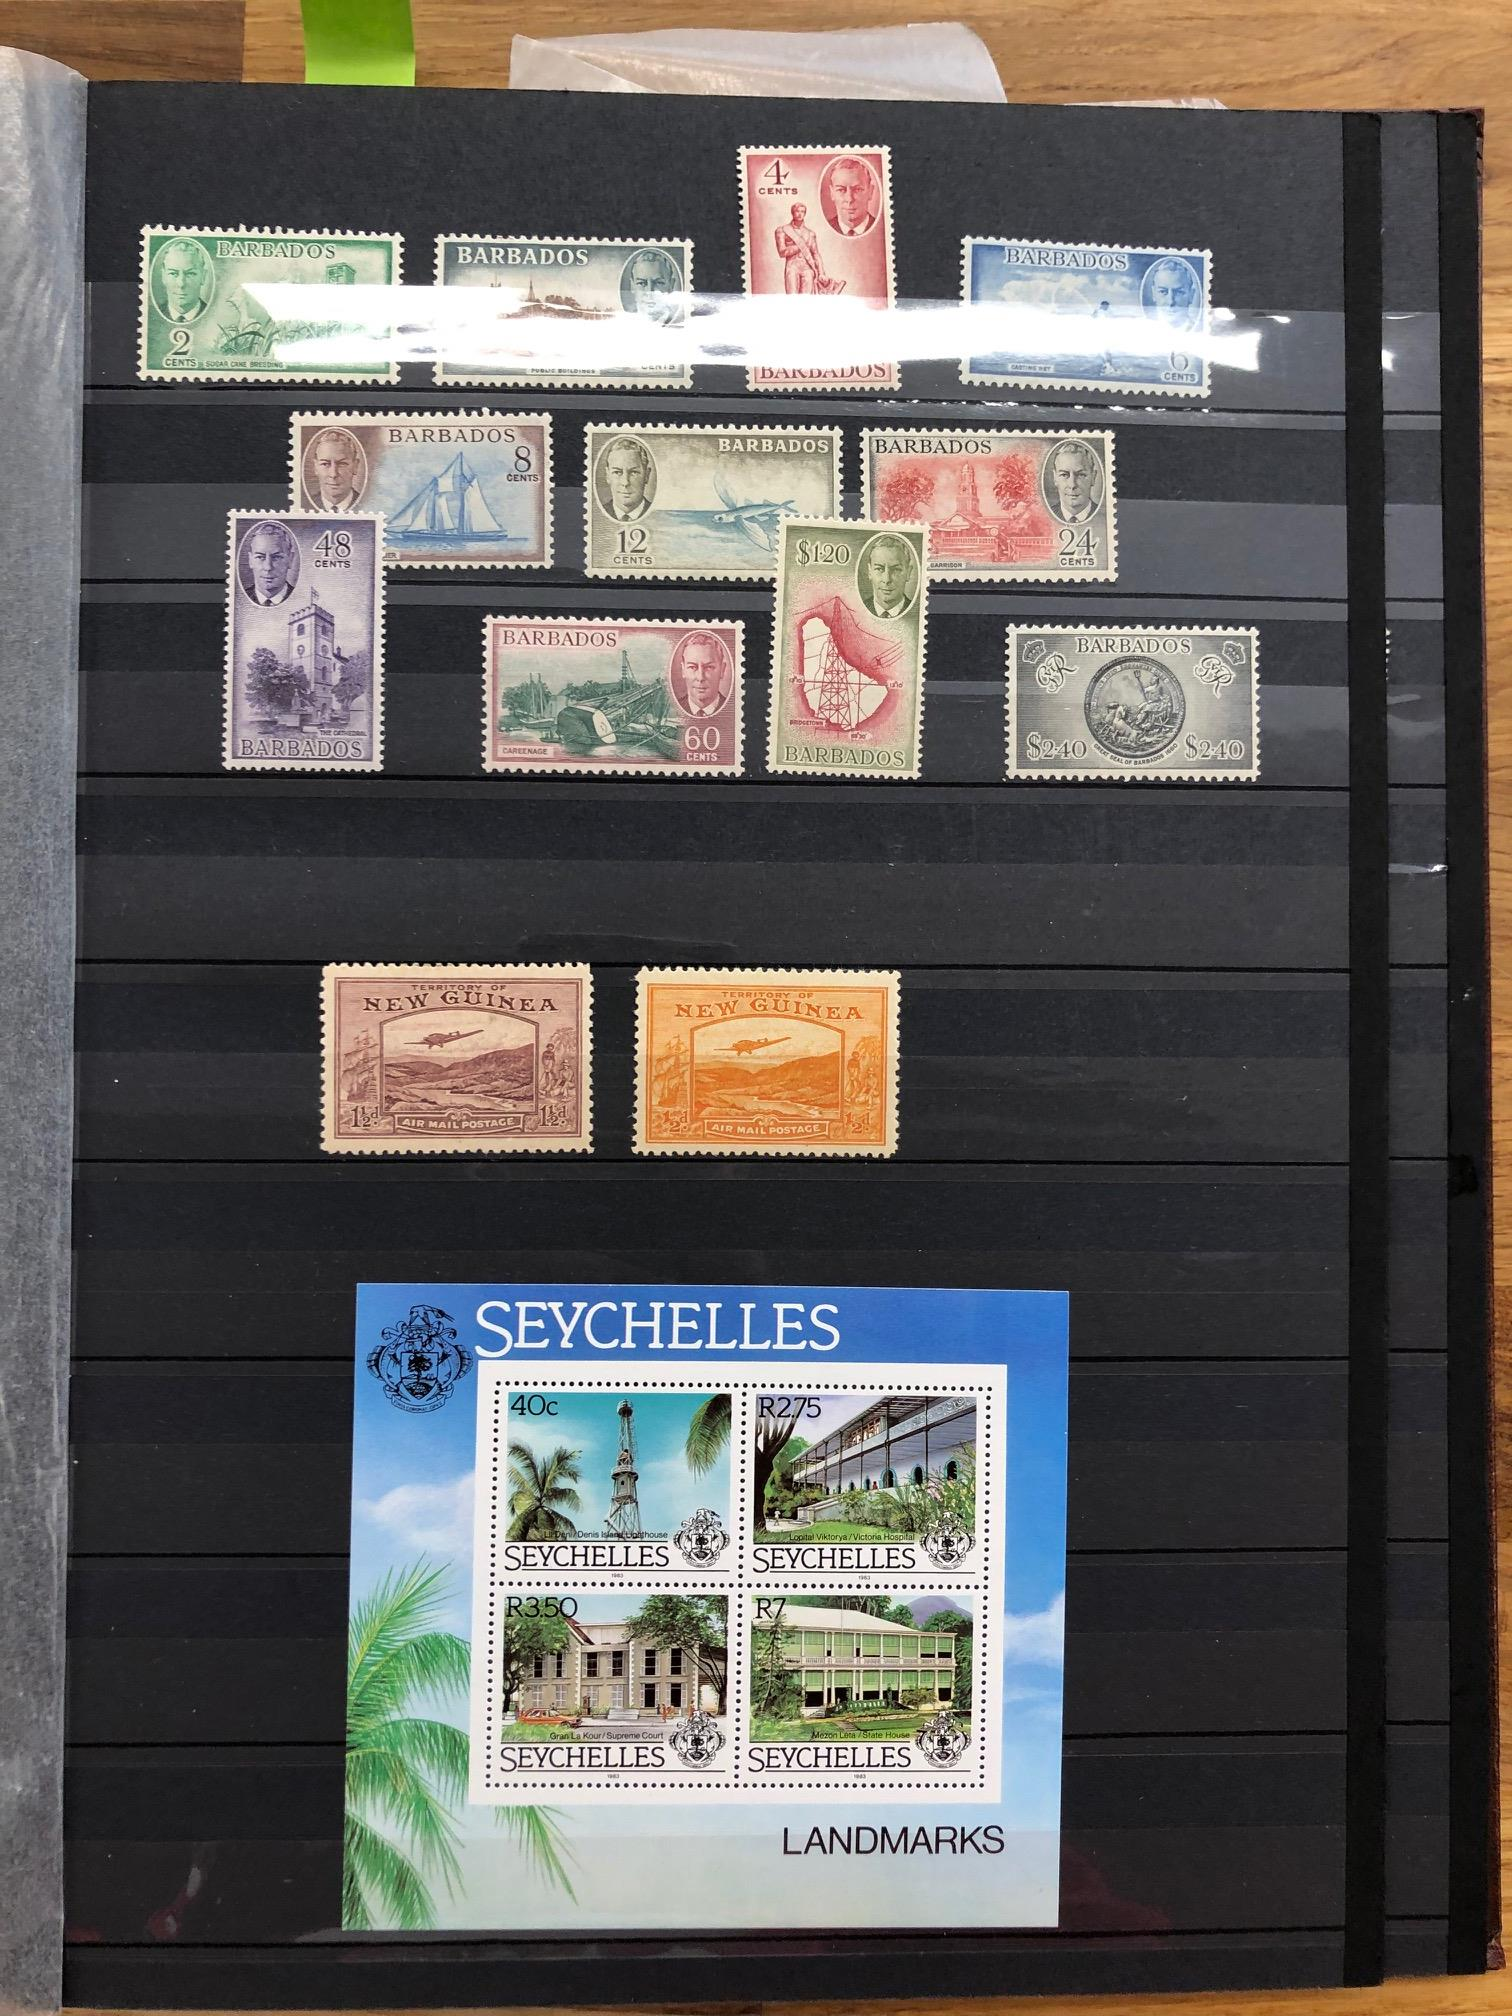 COMMONWEALTH sparse but useful little mint lot with Barbados 1950 set complete, NZ KG6.